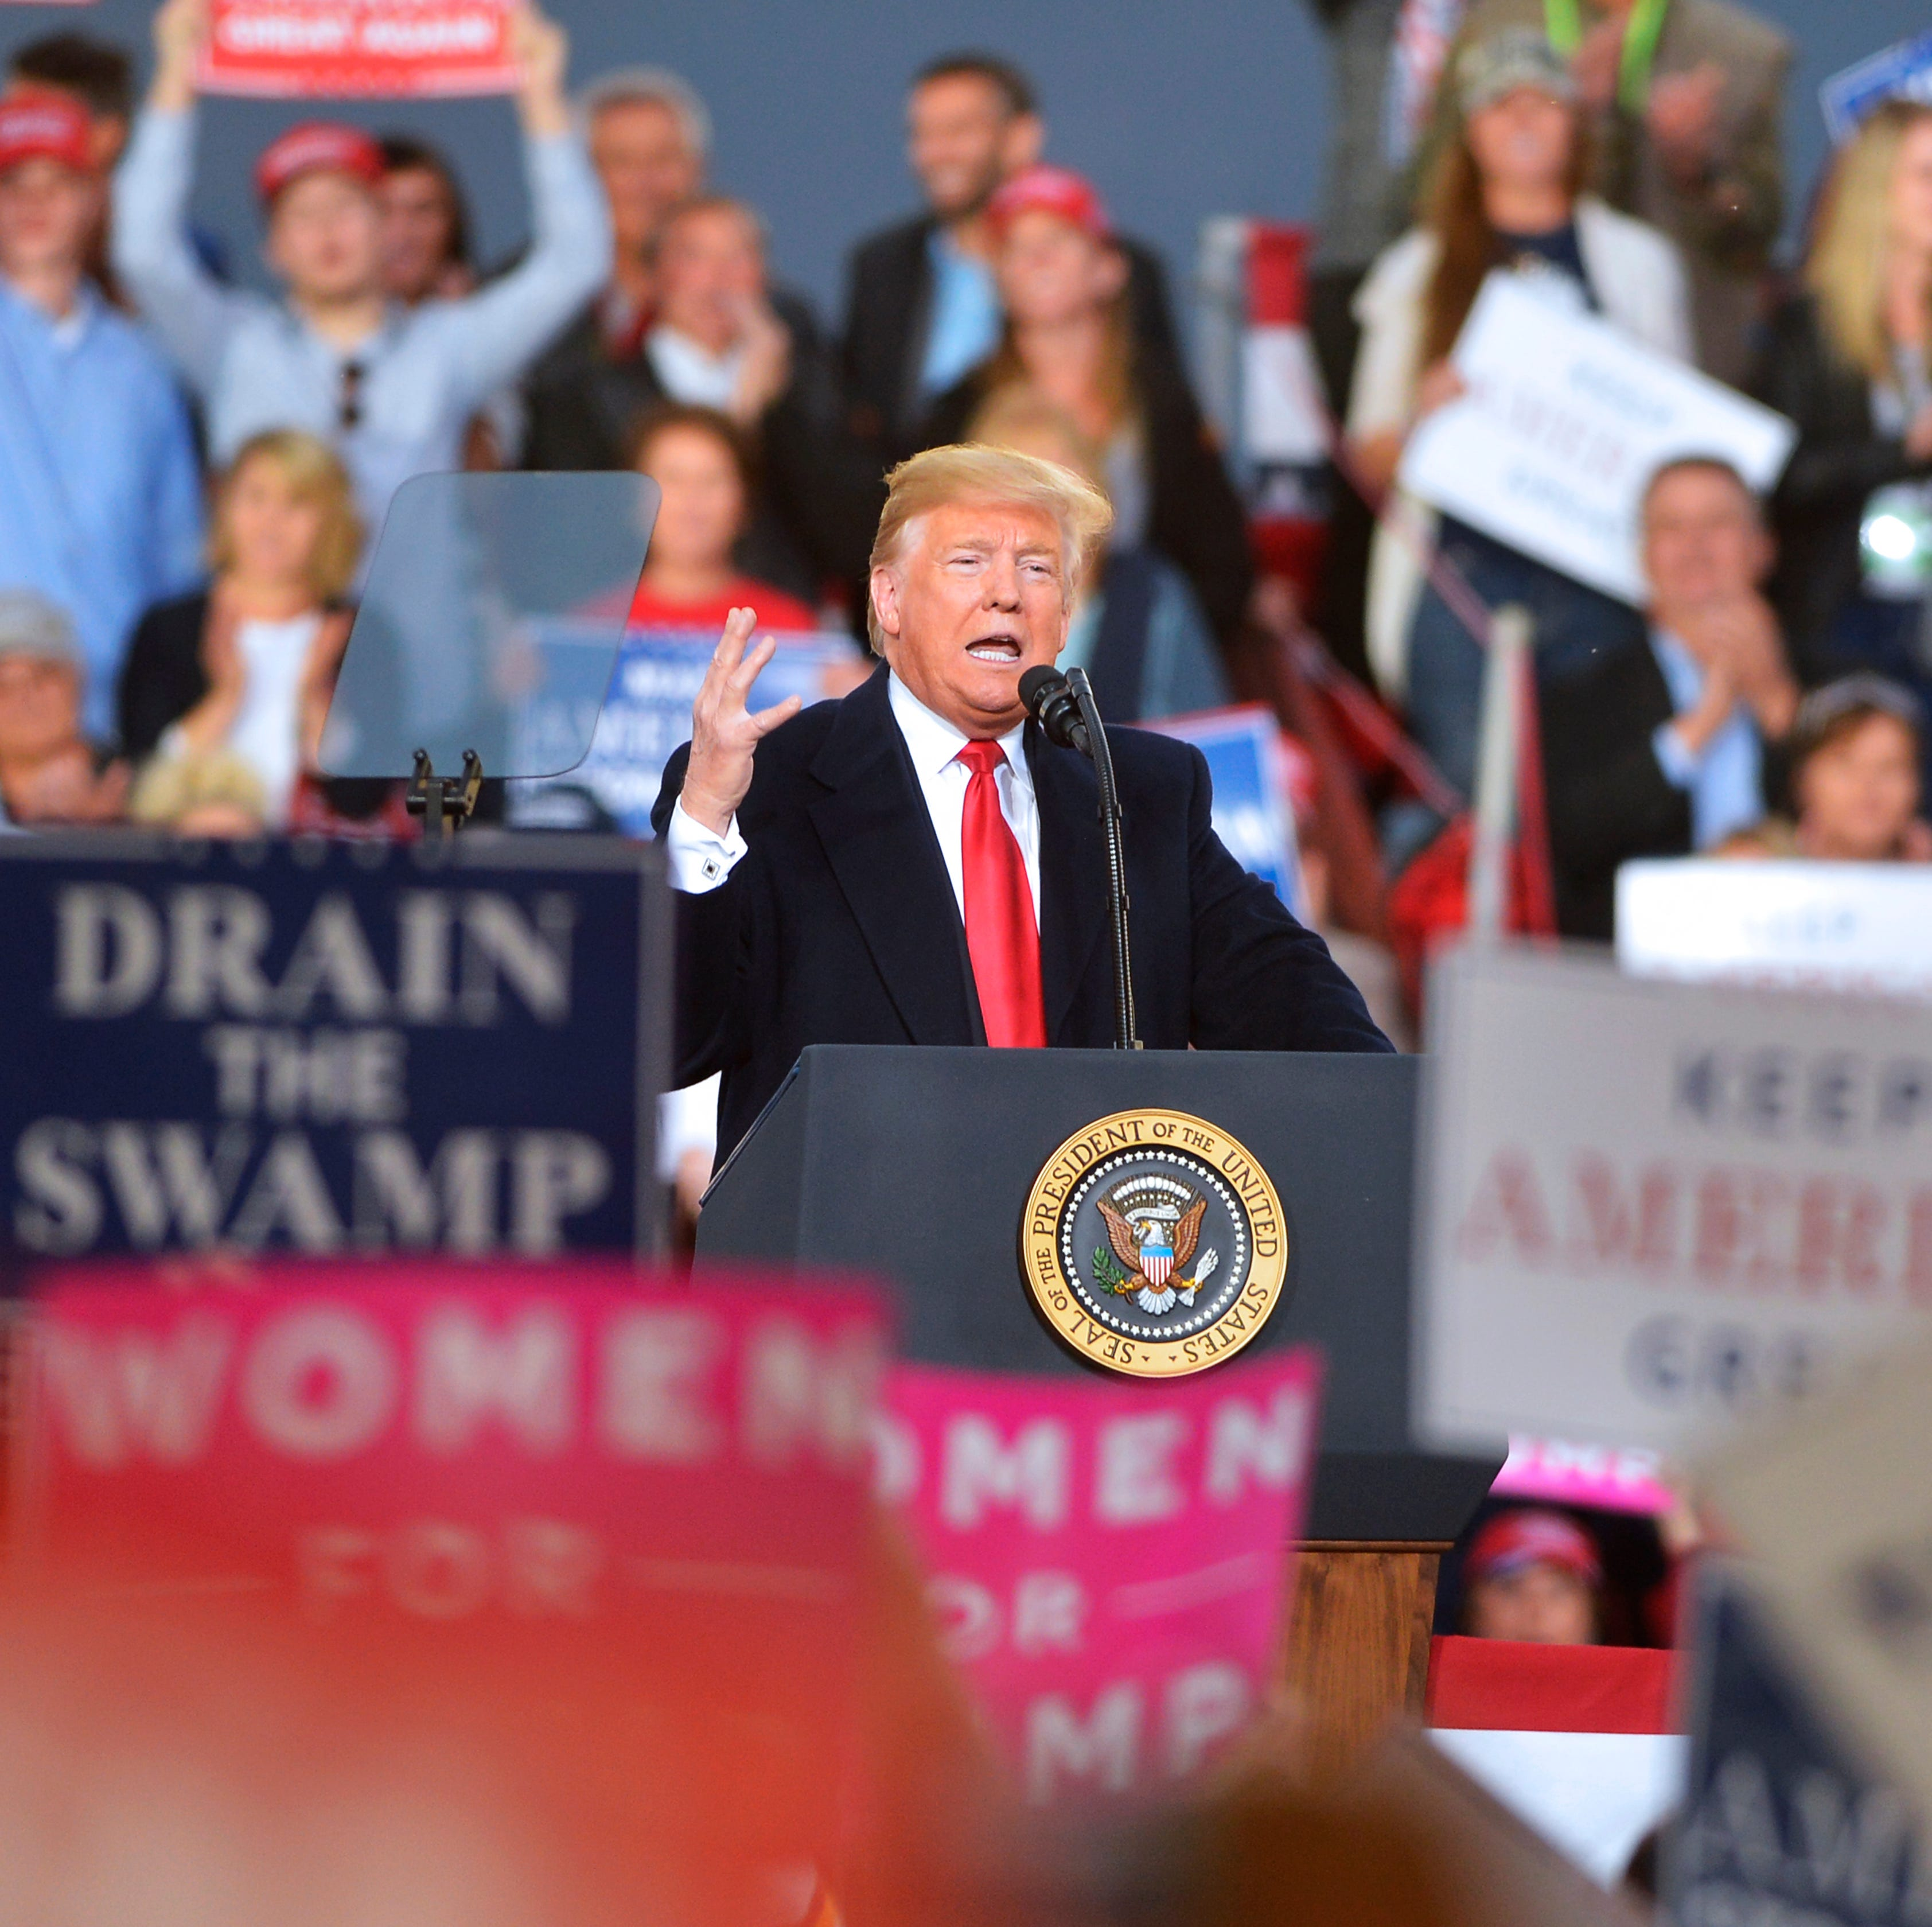 Women, Kavanaugh and Gianforte body slam: Here's what to know about Trump's Missoula rally